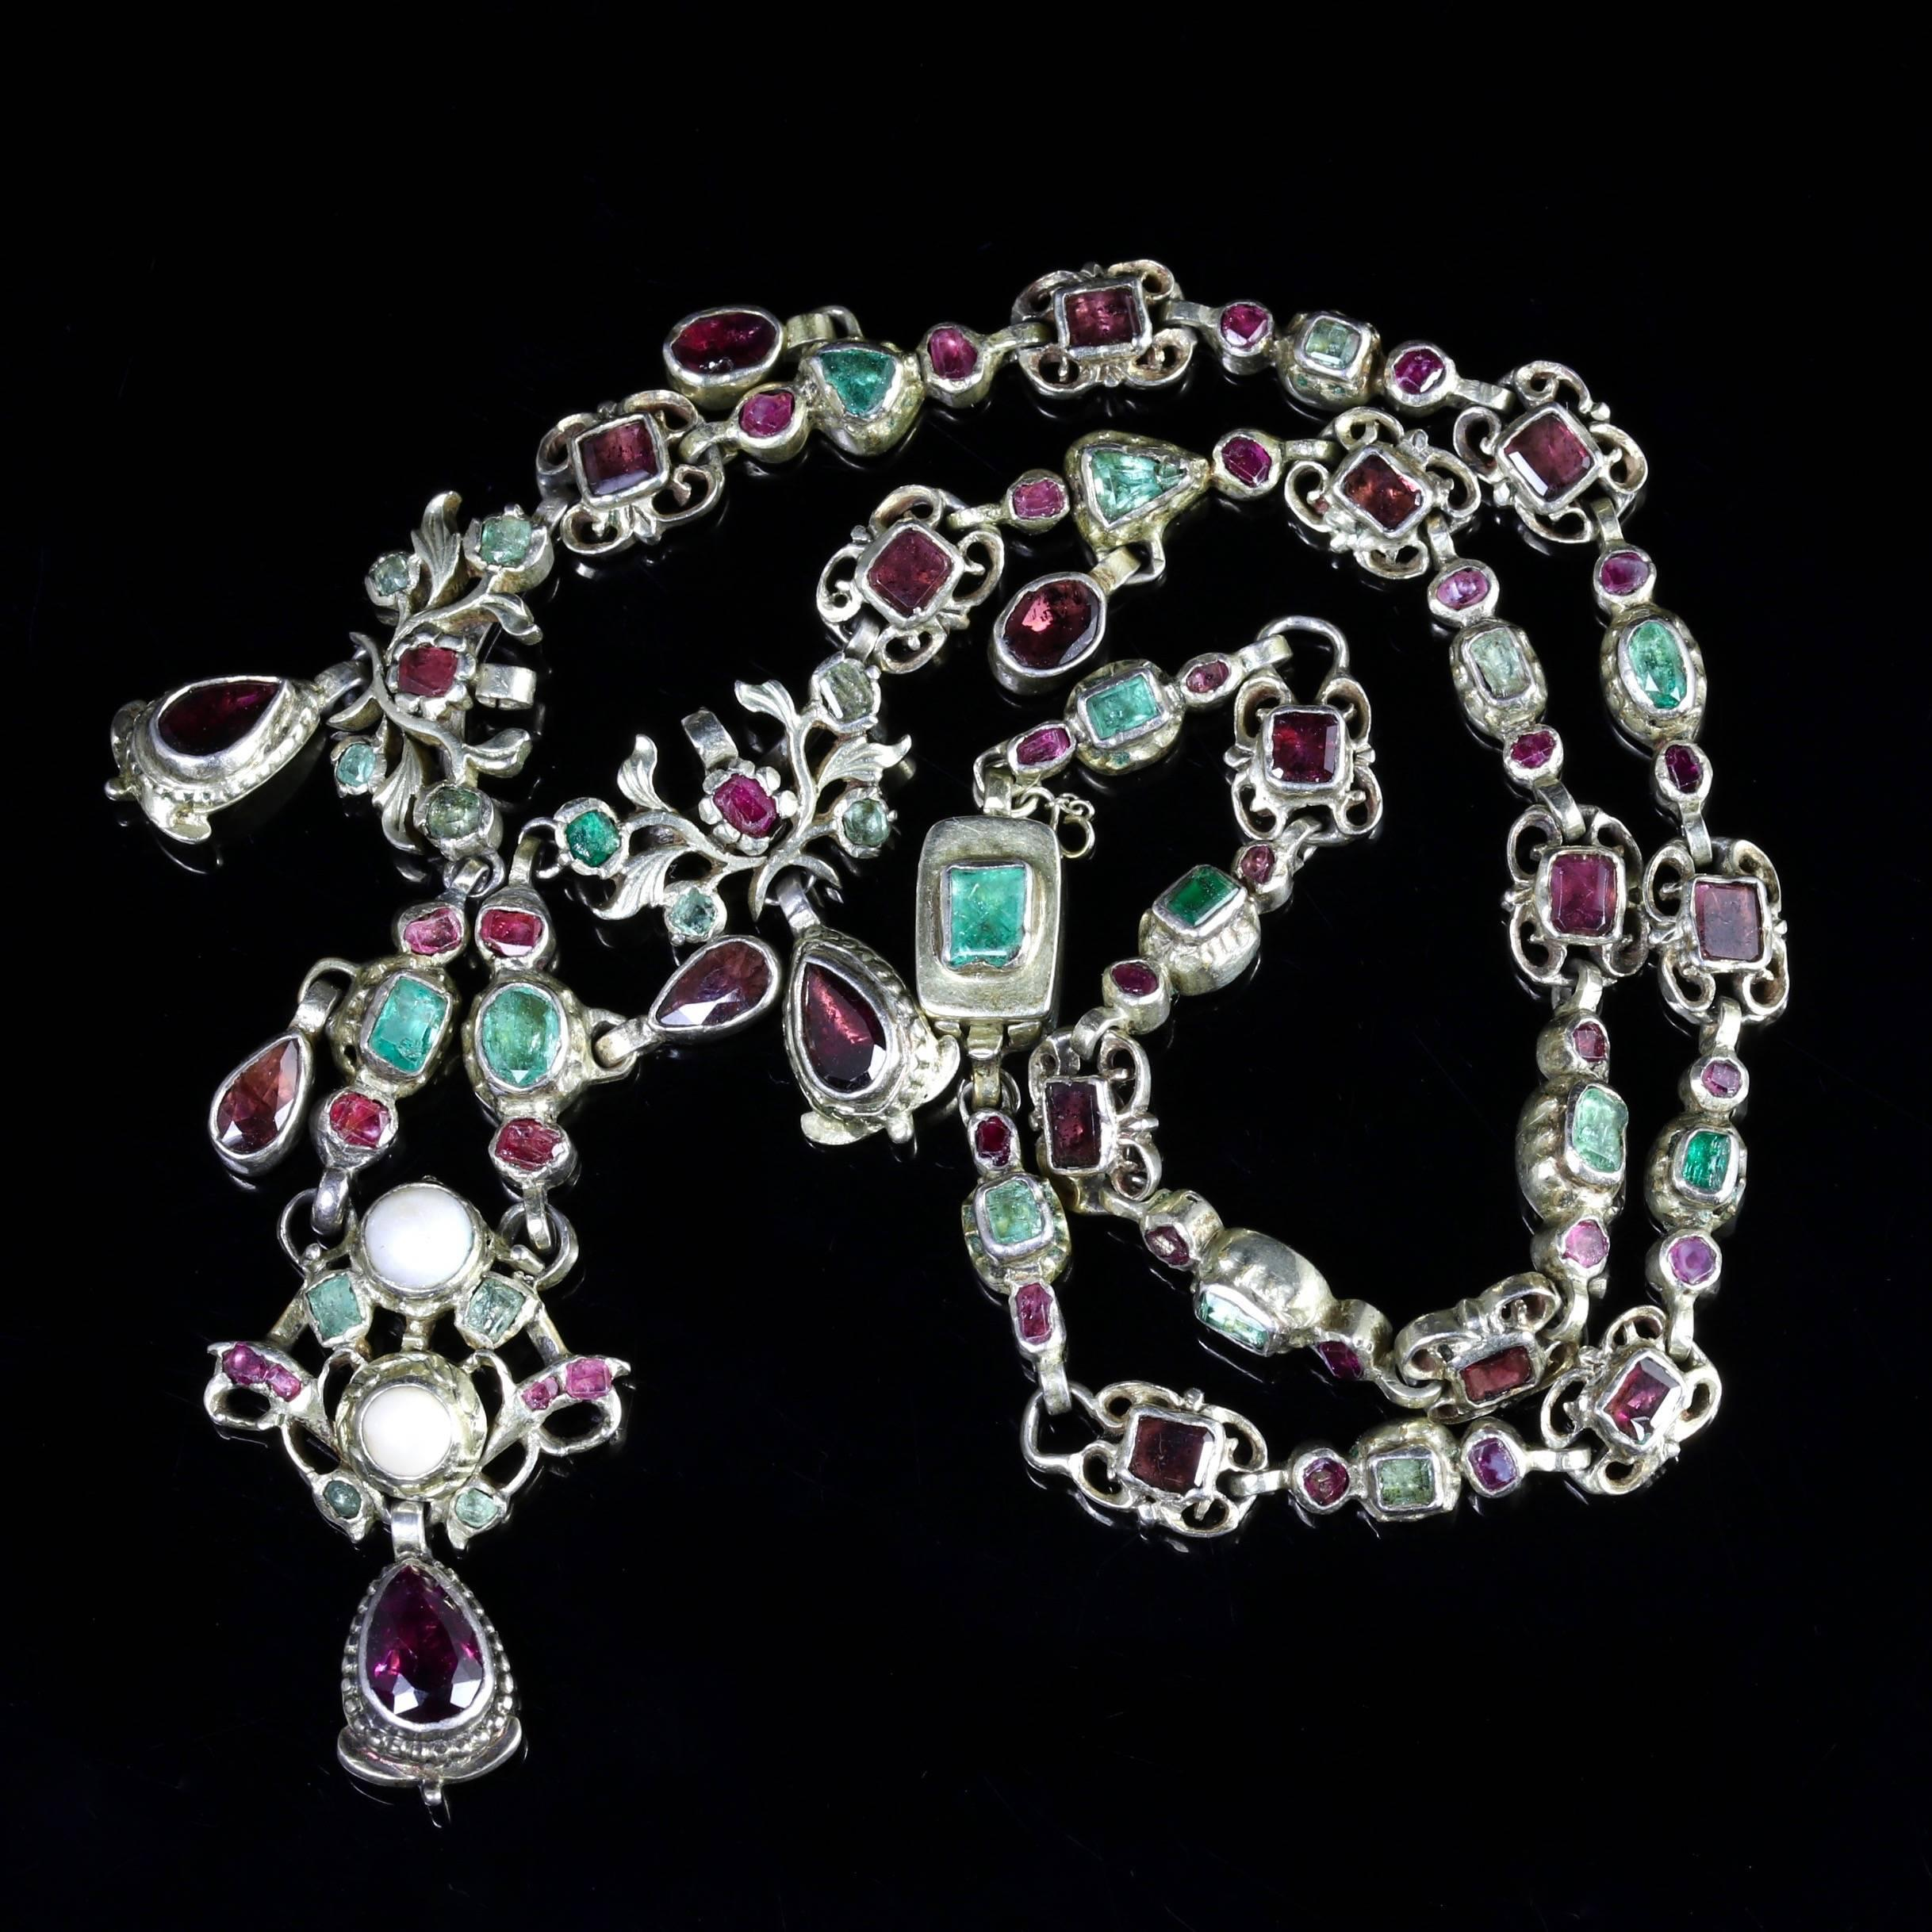 j drop renaissance necklace emerald garnet jewelry georgian id at hand master ruby necklaces circa